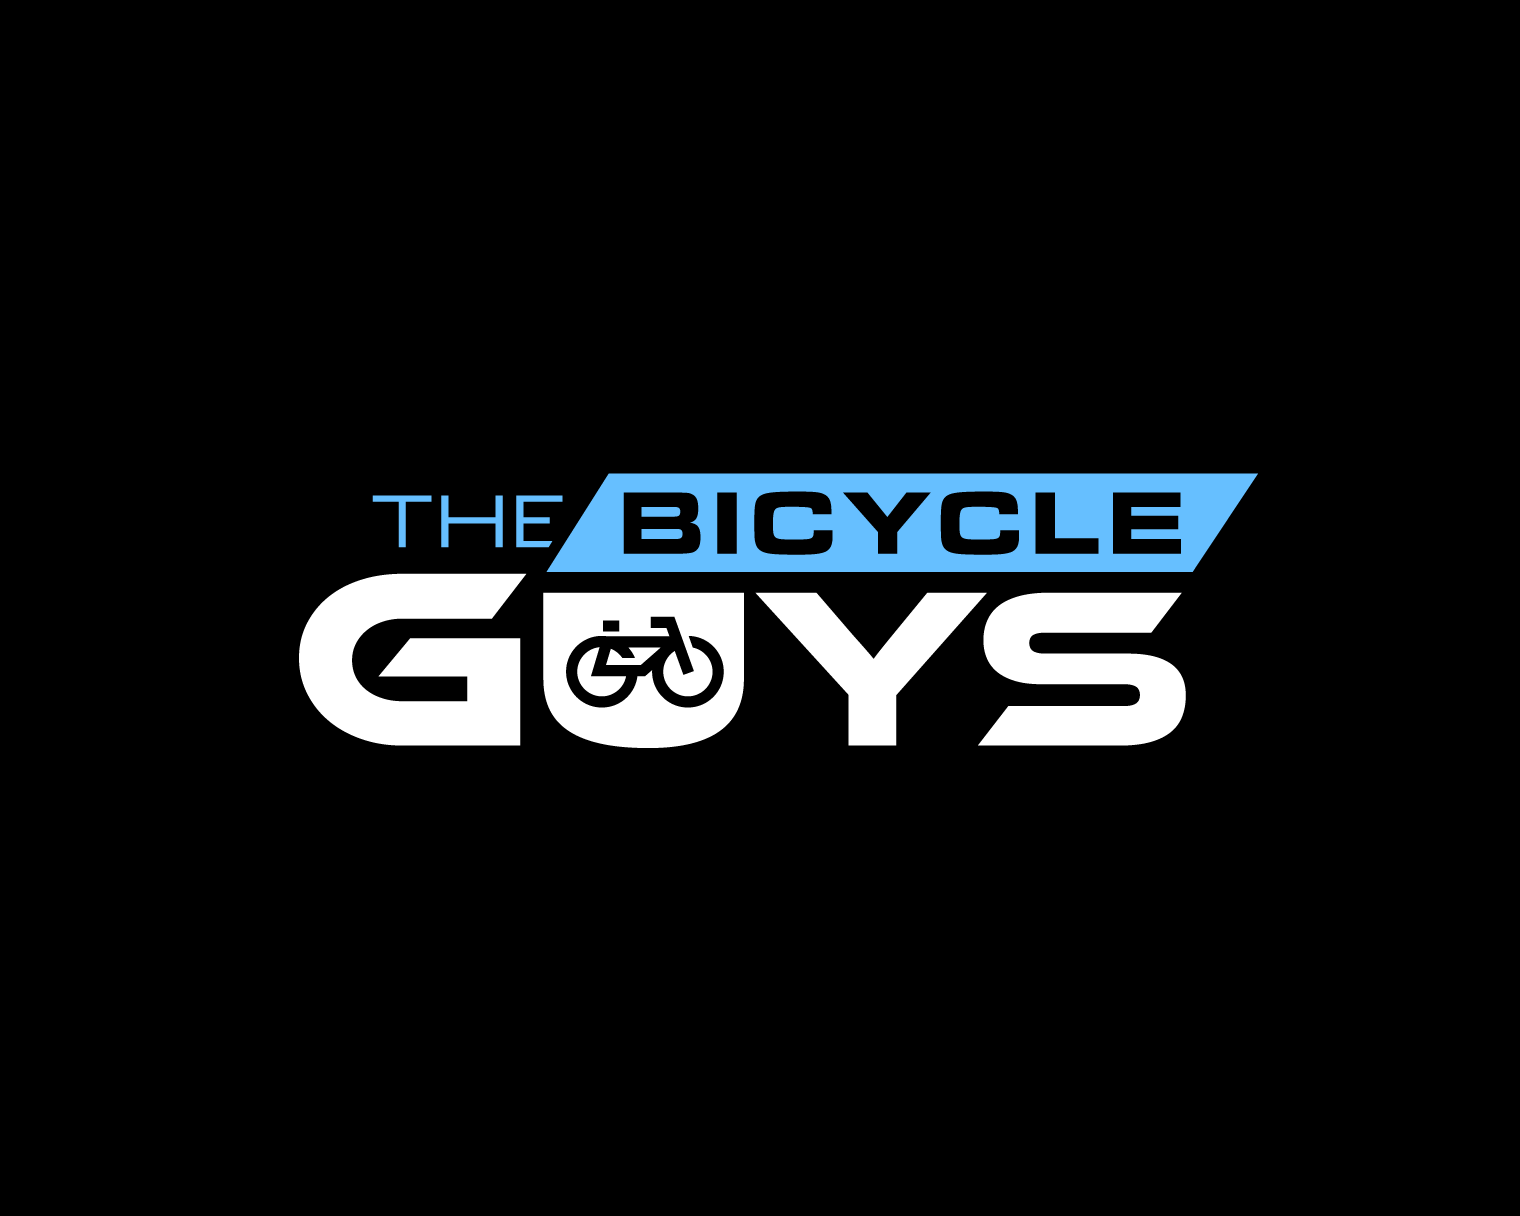 The Bicycle Guys - design #1755935